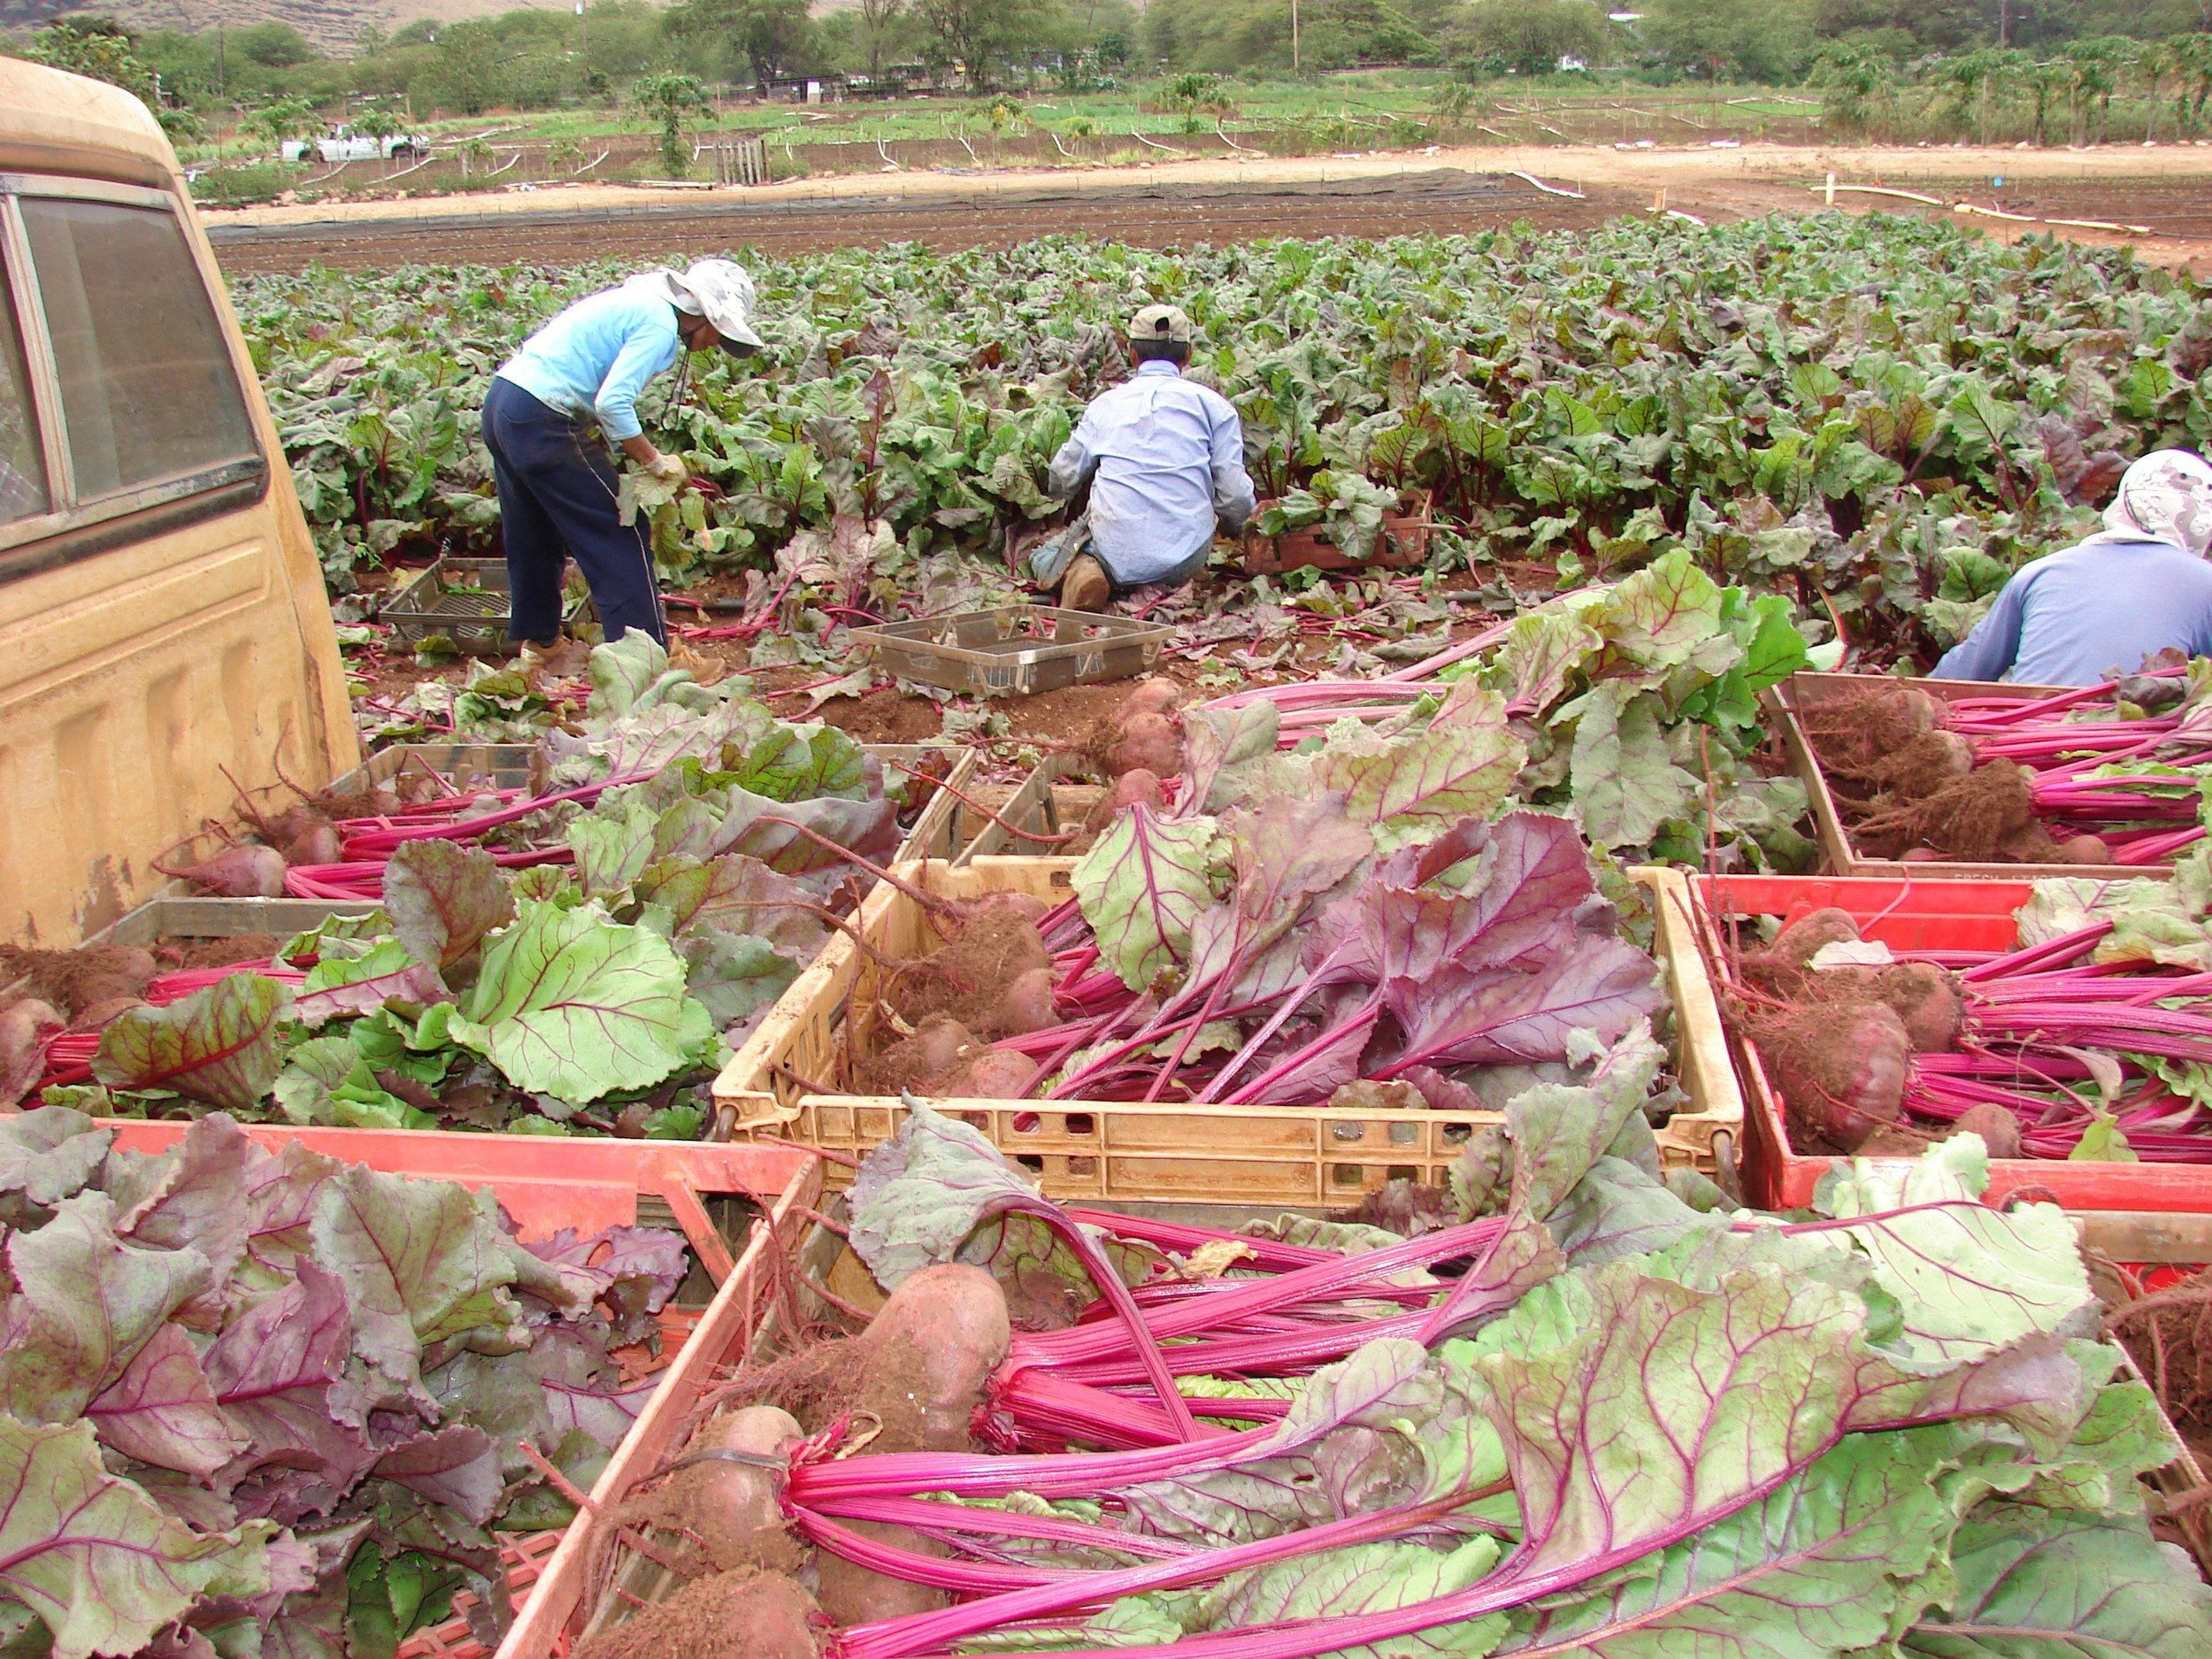 Beets that are harvested by his workers are loaded onto trucks from the farm. It is then taken to be washed, sorted and packed for later distribution to local supermarkets.